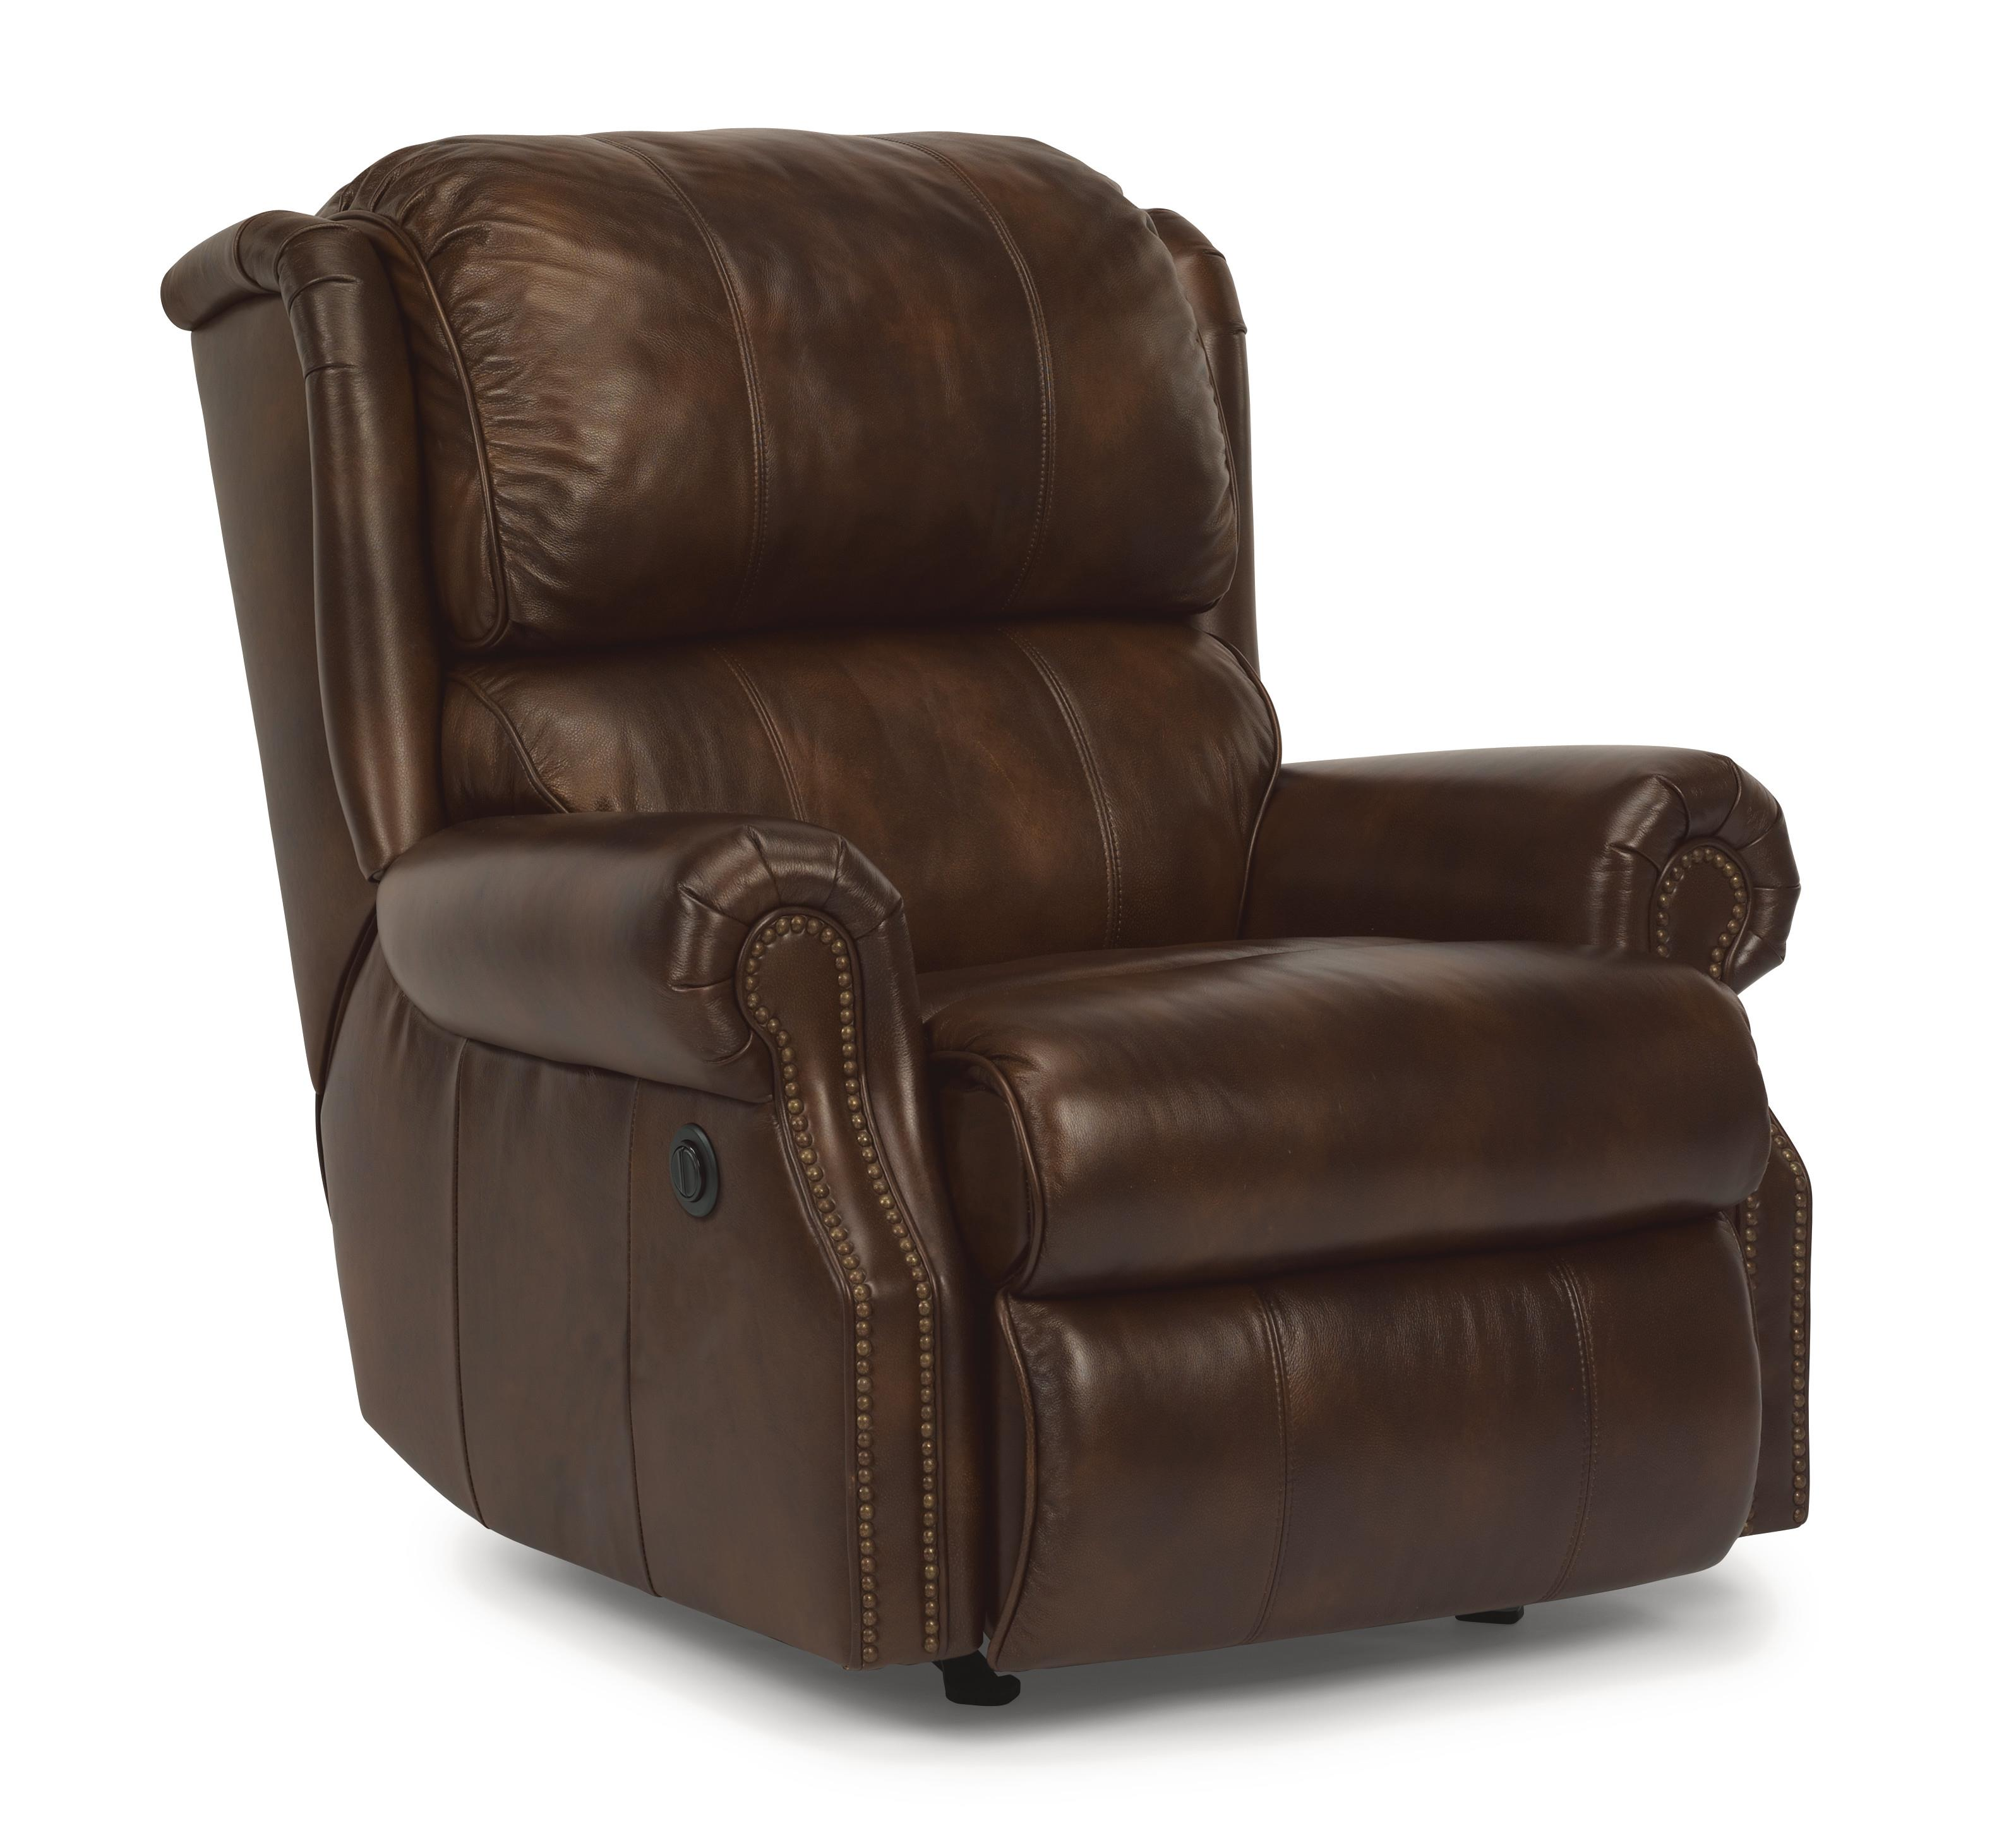 Flexsteel Latitudes - Comfort Zone Recliner w/ Power - Item Number: 1227-500P-LSP-61